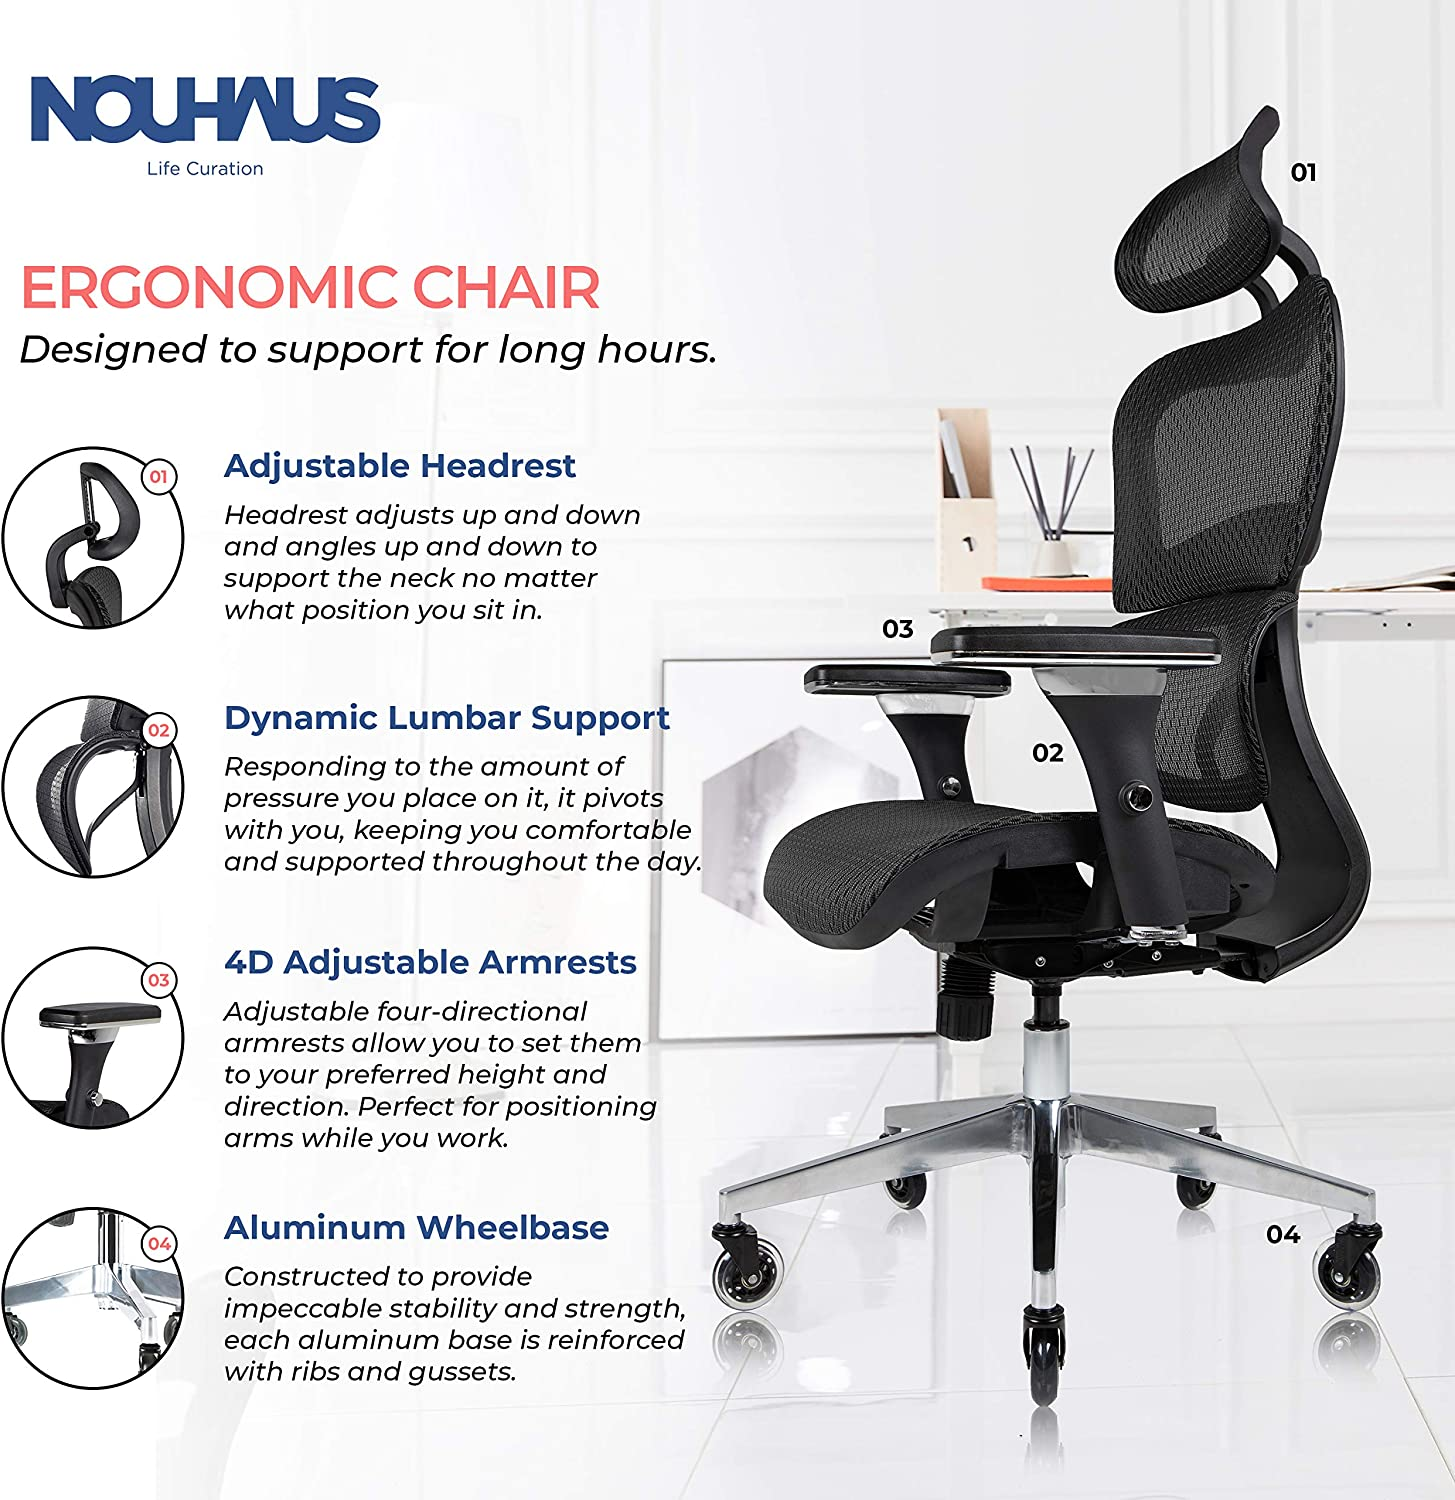 91hCN632pLL. AC SL1500 - What Are The Best Office Chair For Lower Back Pain Under $300 - ChairPicks